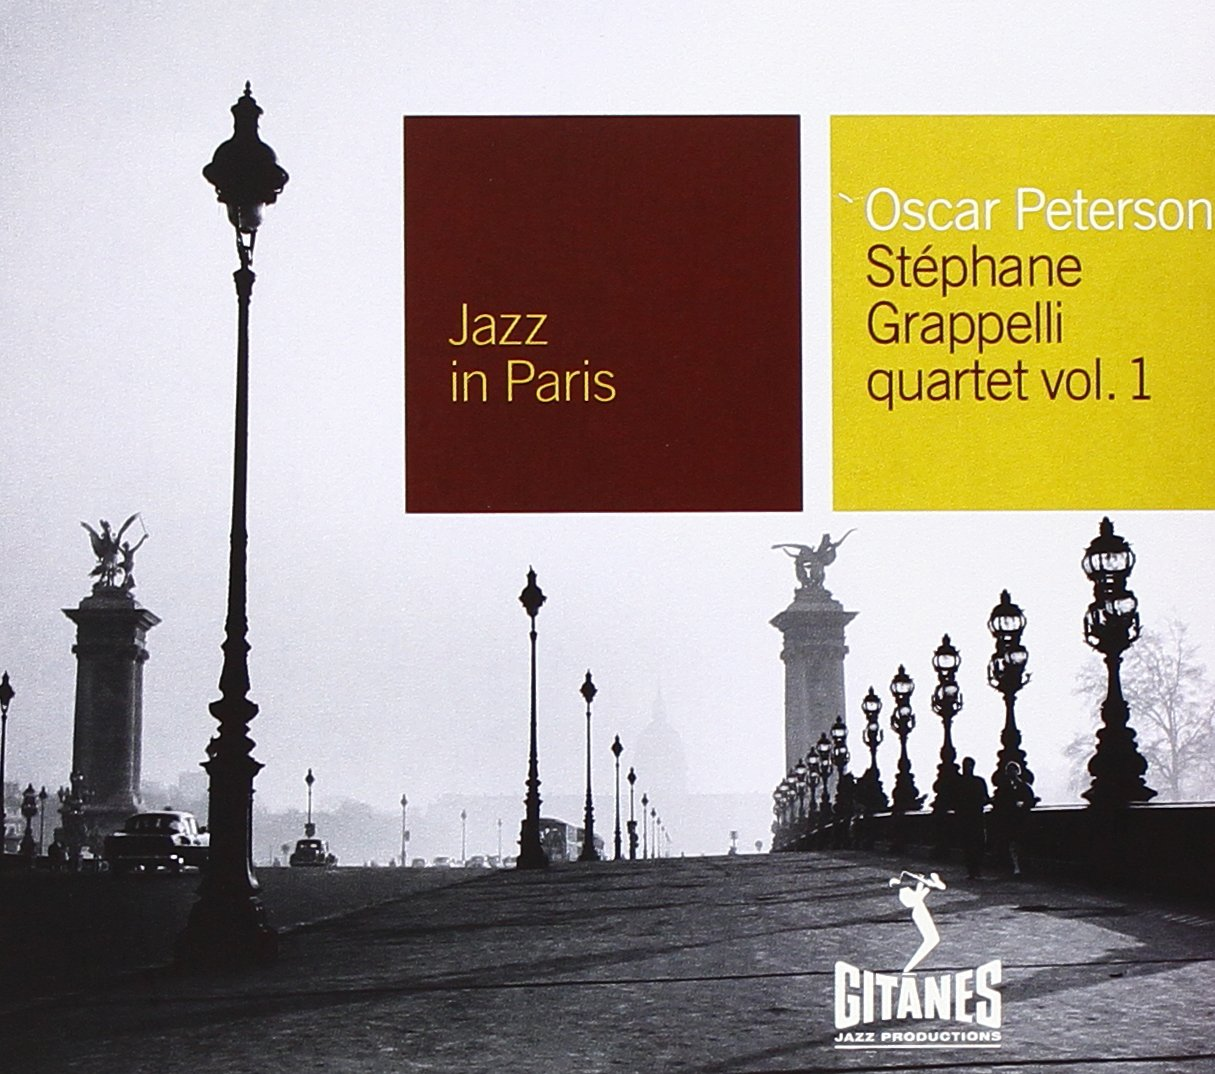 Oscar Peterson & Stephane Grappelli Quartet - Jazz in Paris: Oscar  Peterson-Stephane Grappelli Quartet, Vol. 1 - Amazon.com Music